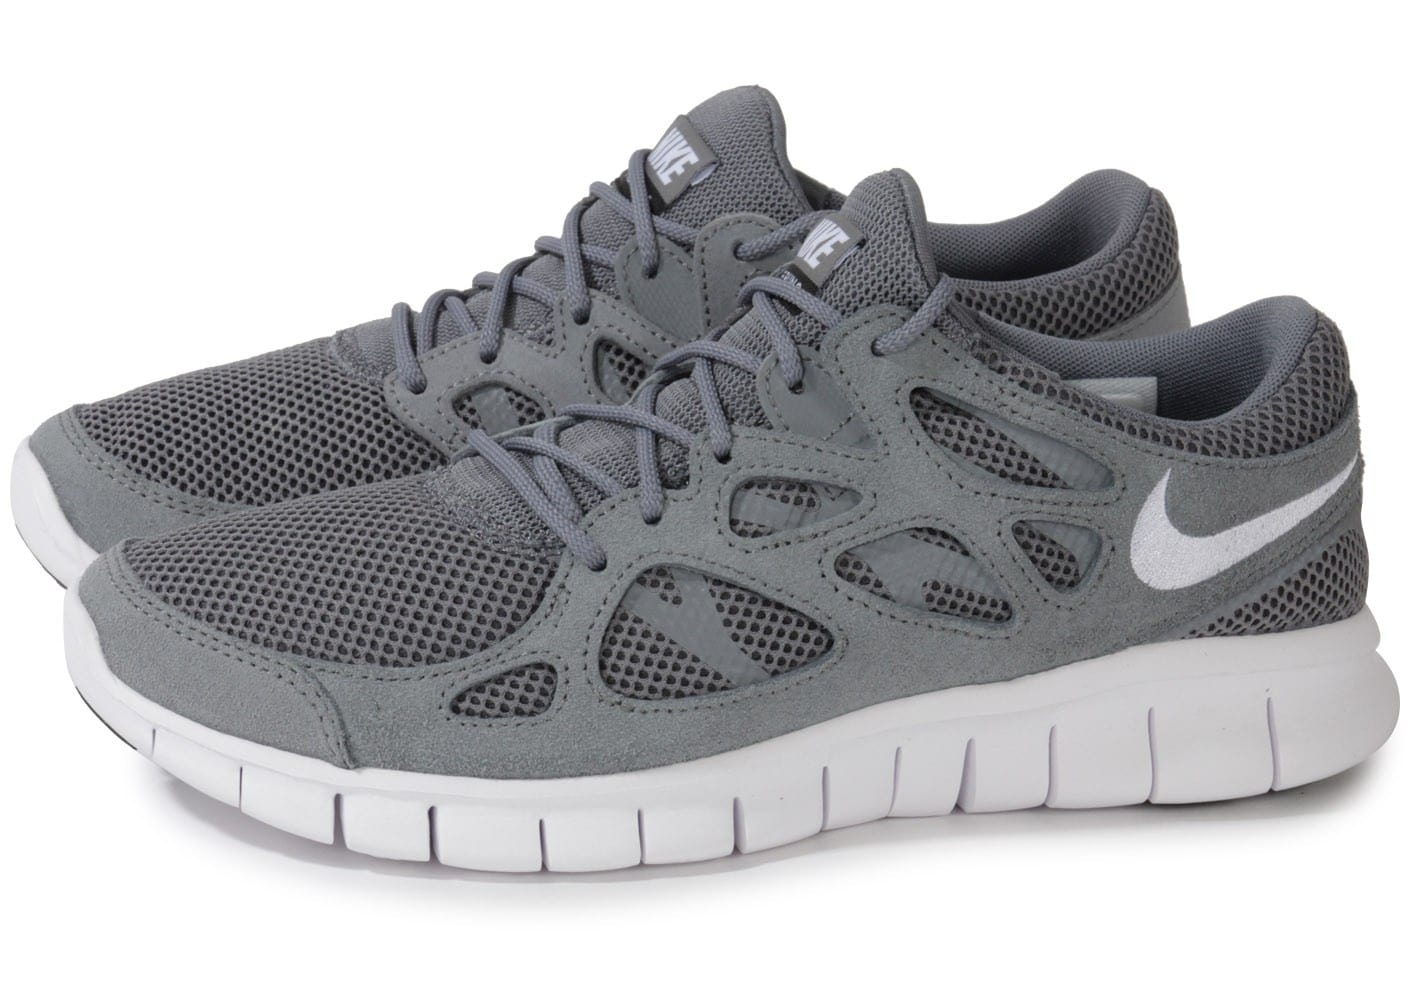 nike free run 2 grise chaussures homme chausport. Black Bedroom Furniture Sets. Home Design Ideas